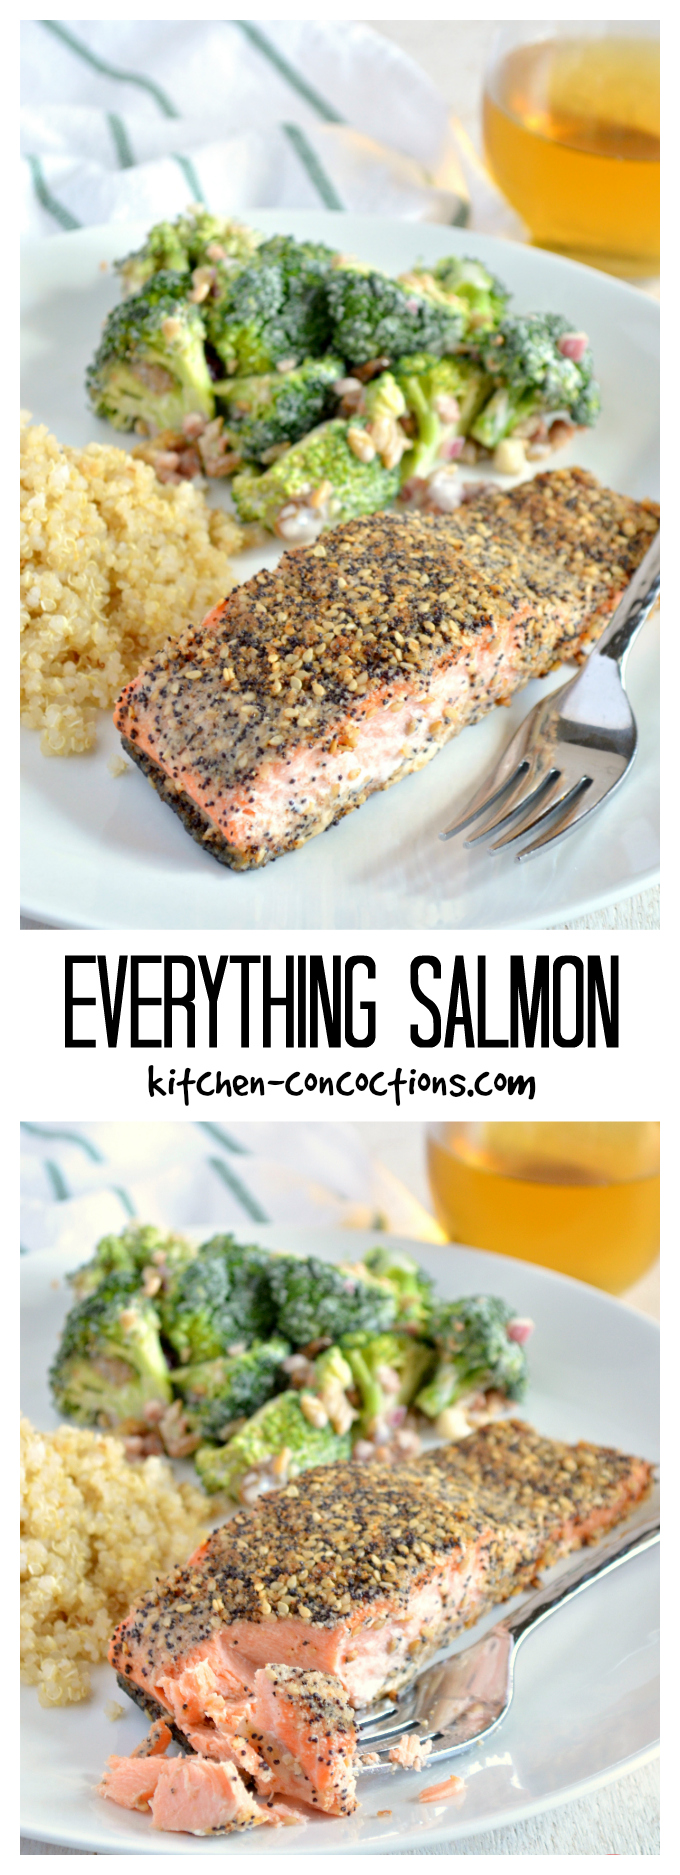 Everything Salmon